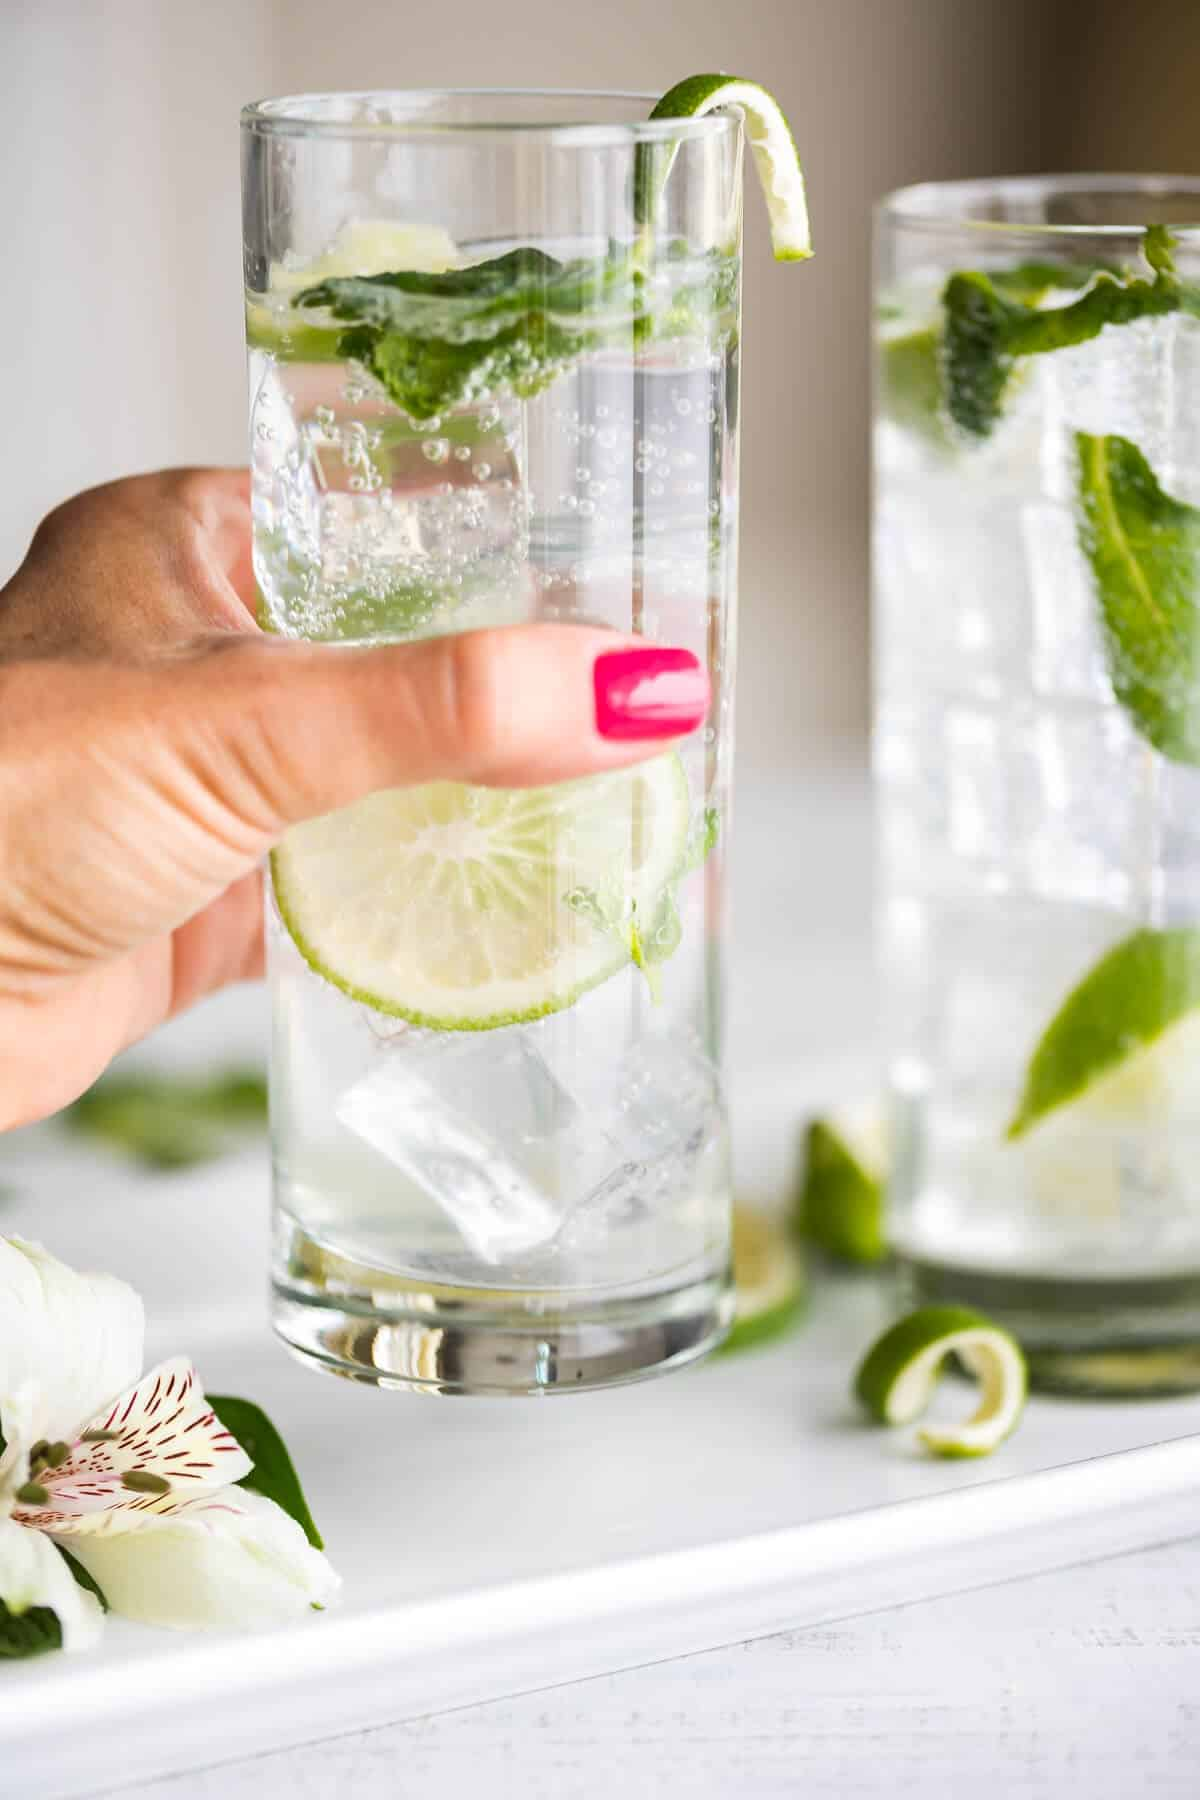 hand lifting virgin mojito from a white tray